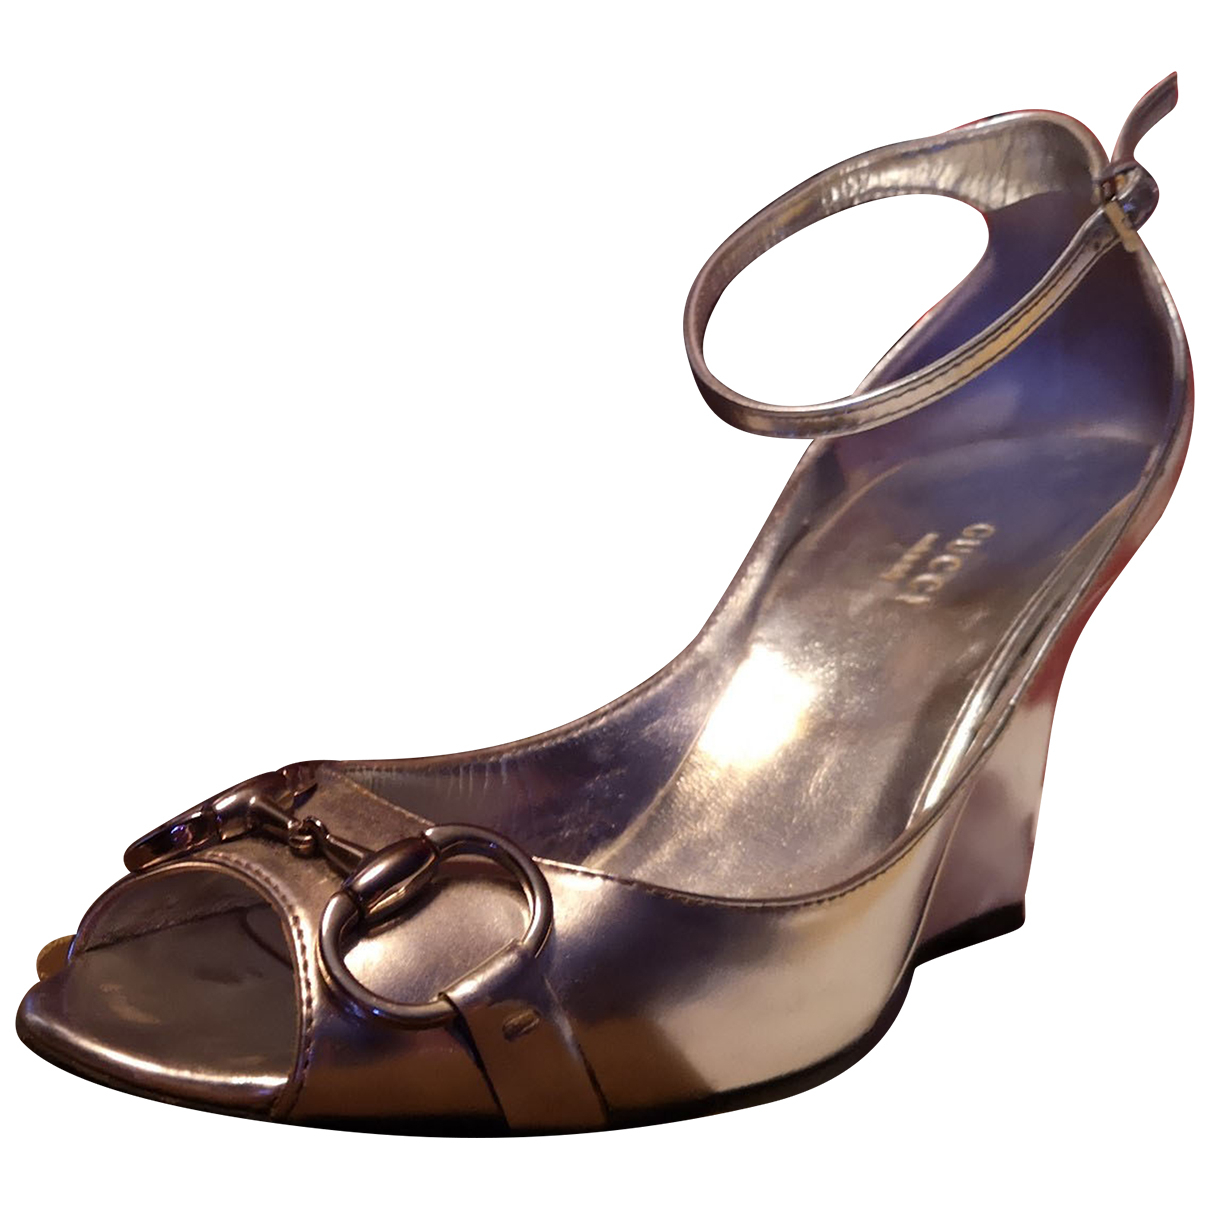 Gucci N Metallic Patent leather Sandals for Women 37 EU